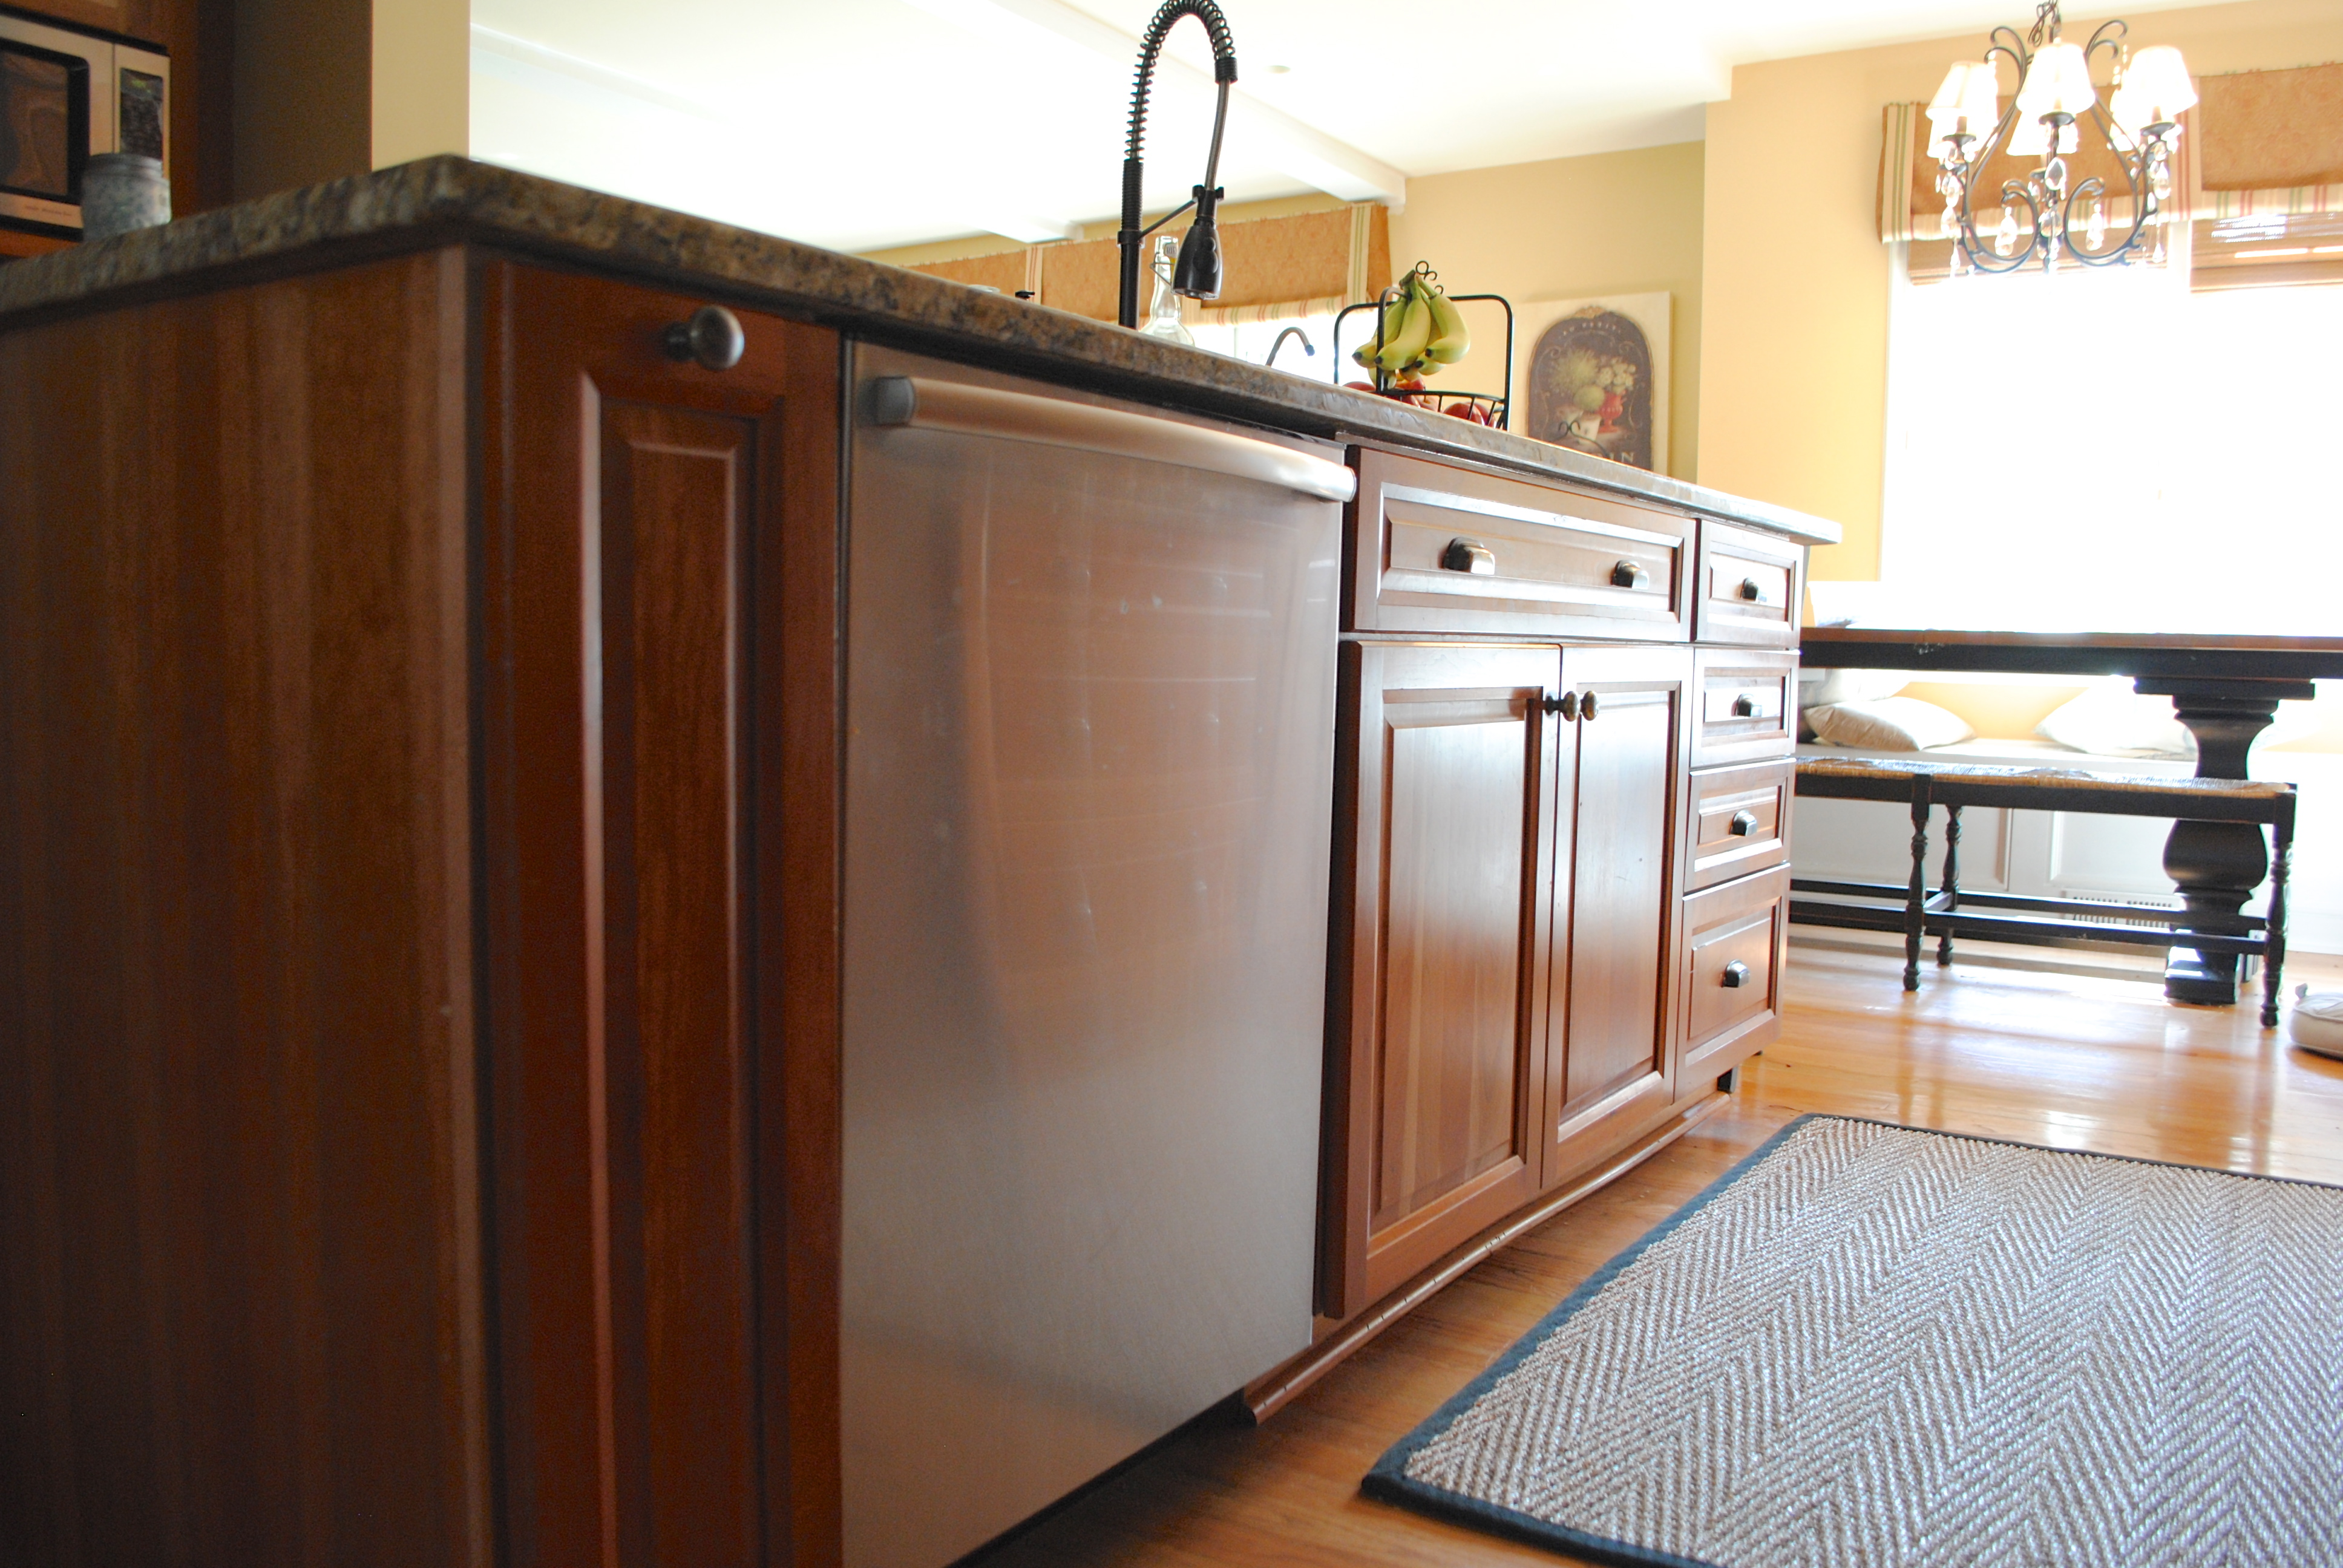 Challenge 13 dishwasher this beautifully imperfect life for My dishwasher smells like fish